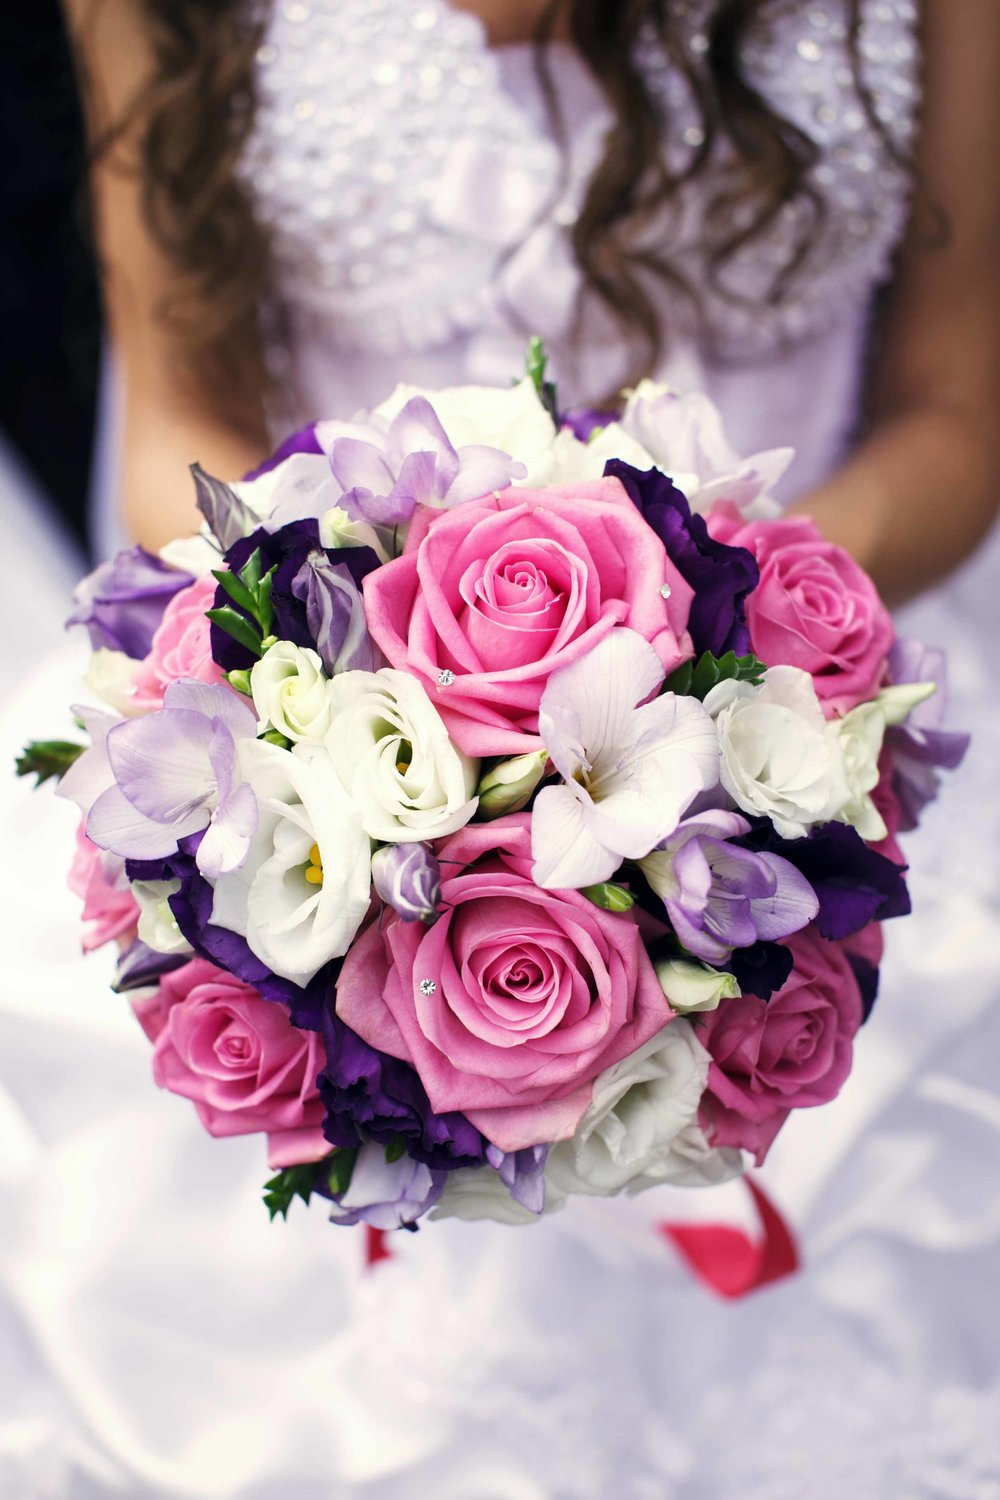 It's fast, easy, and free to deliver your bouquet for flower preservation from the Sioux Falls, SD area. Call today! 701-400-6162.